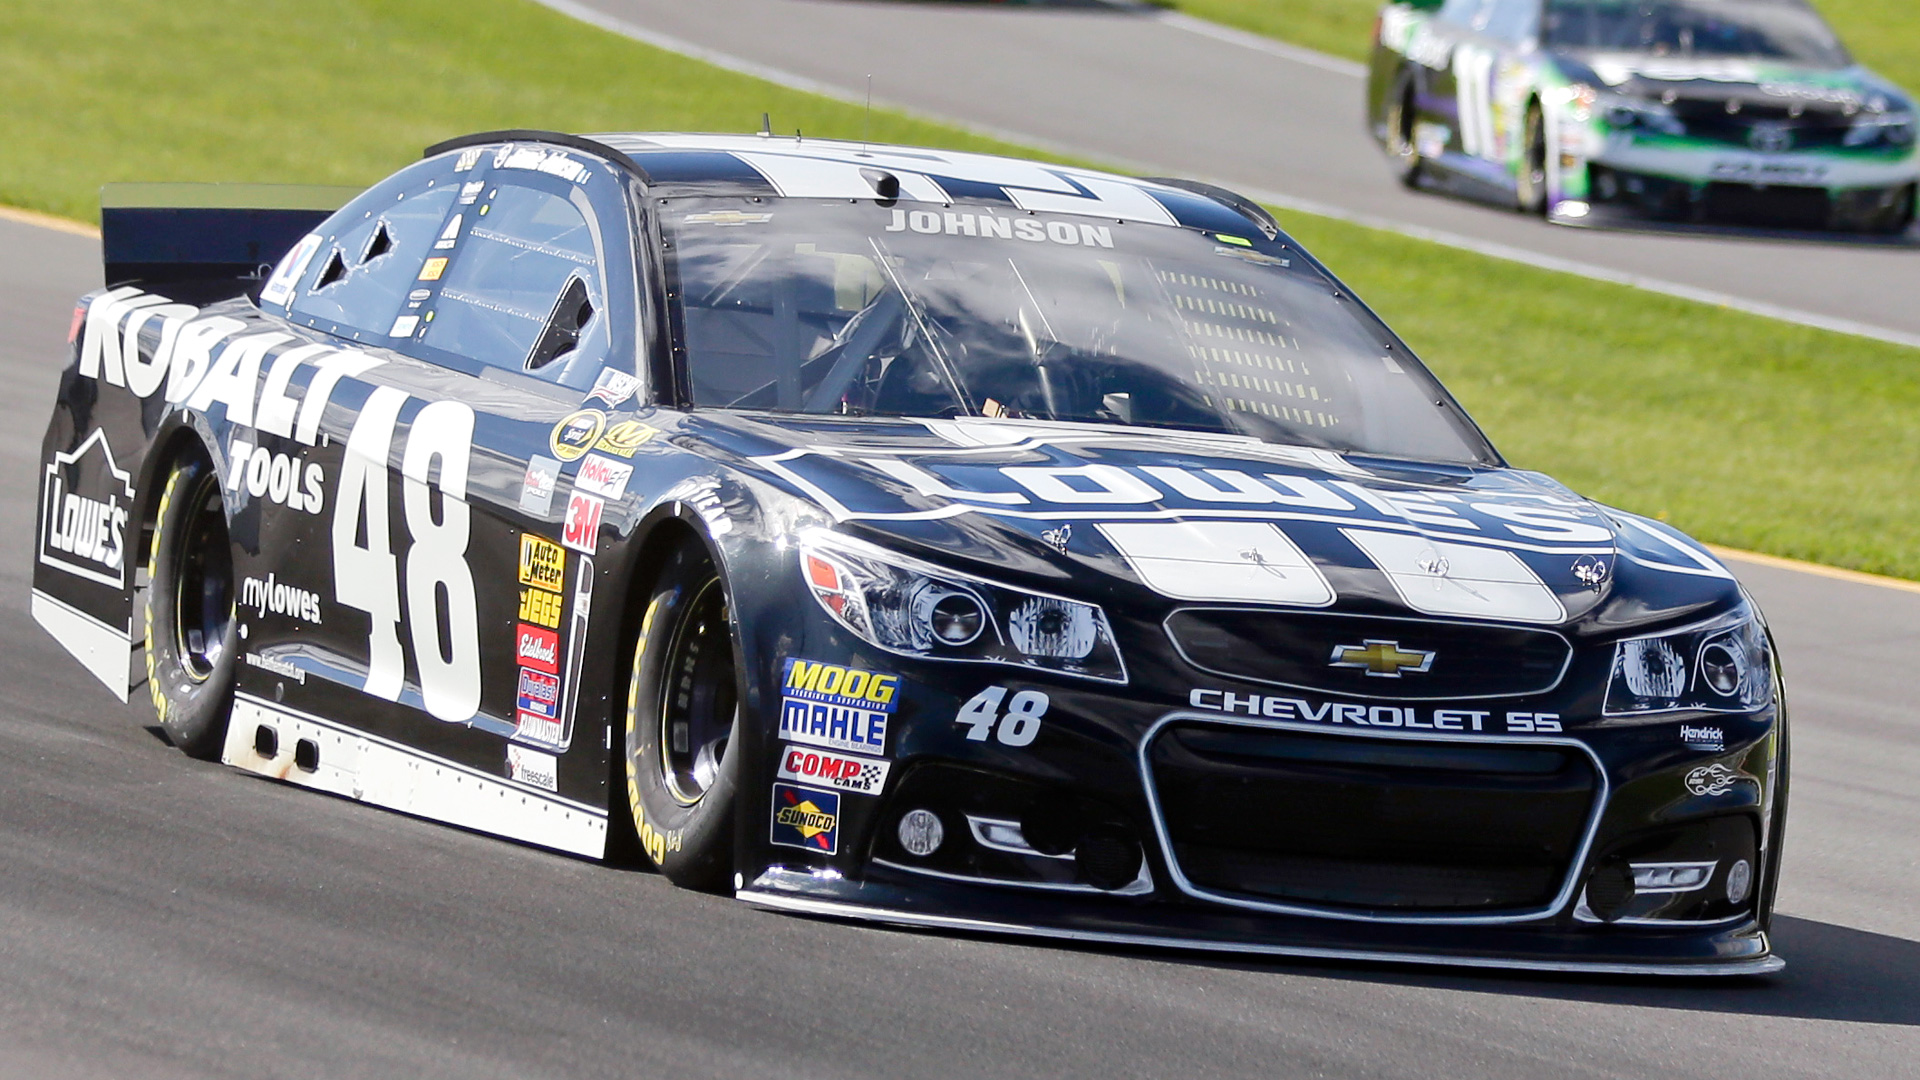 Jimmie Johnson-060614-AP-FTR.jpg